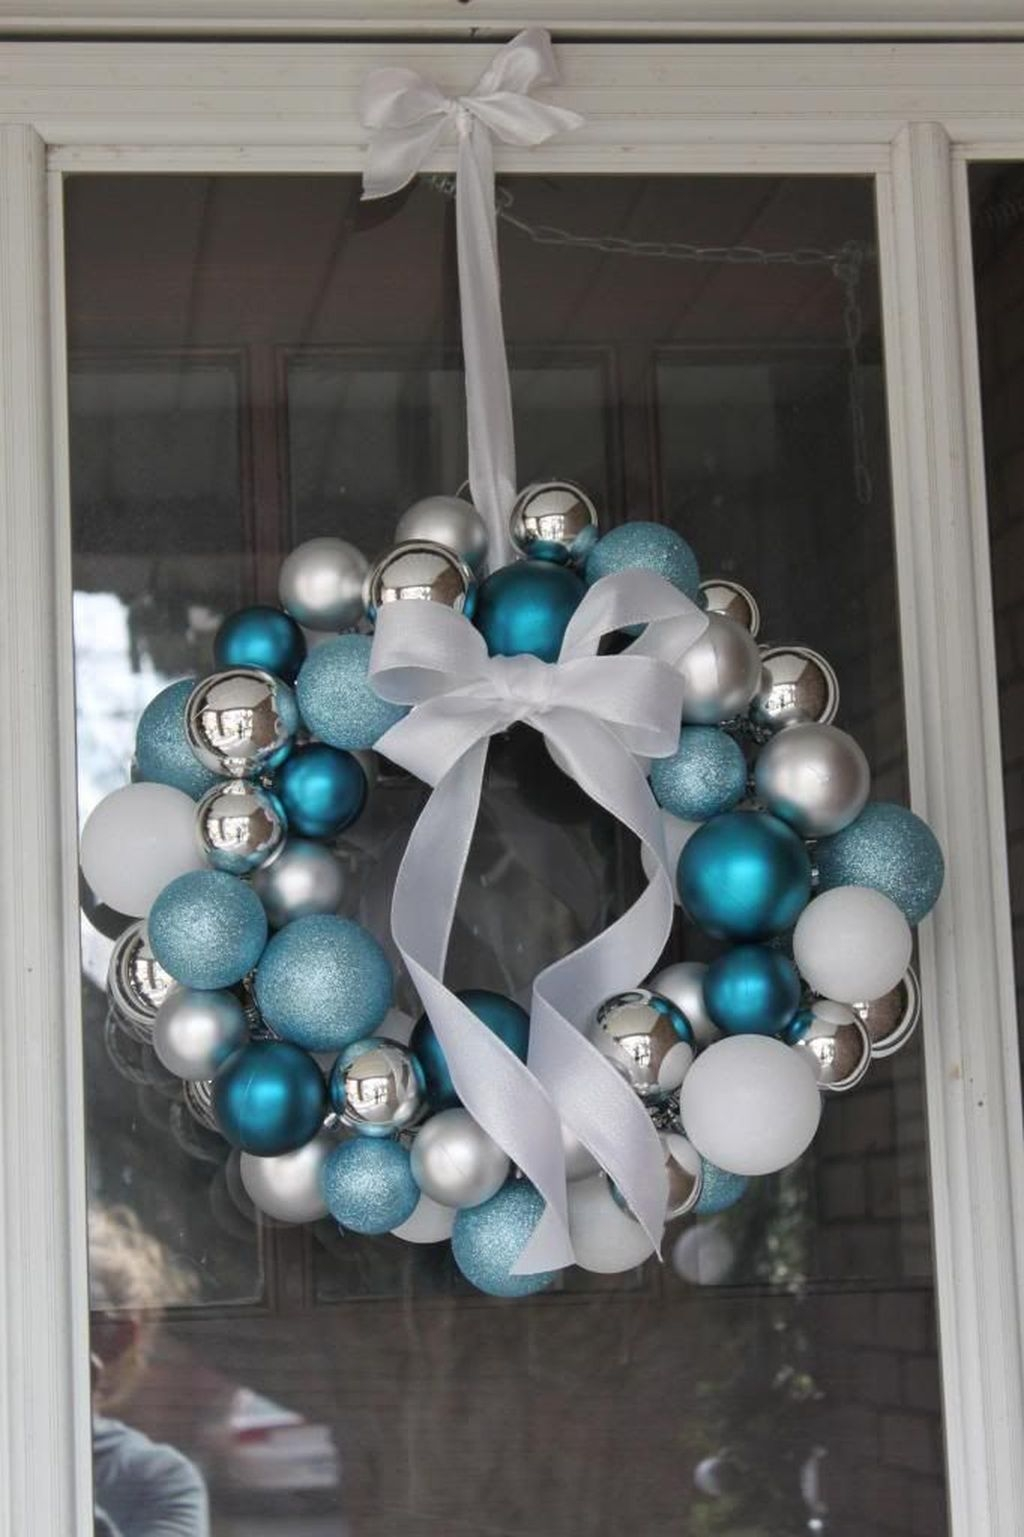 Amazing Silver And Blue Christmas Decoration Ideas For Christmas And New Year06